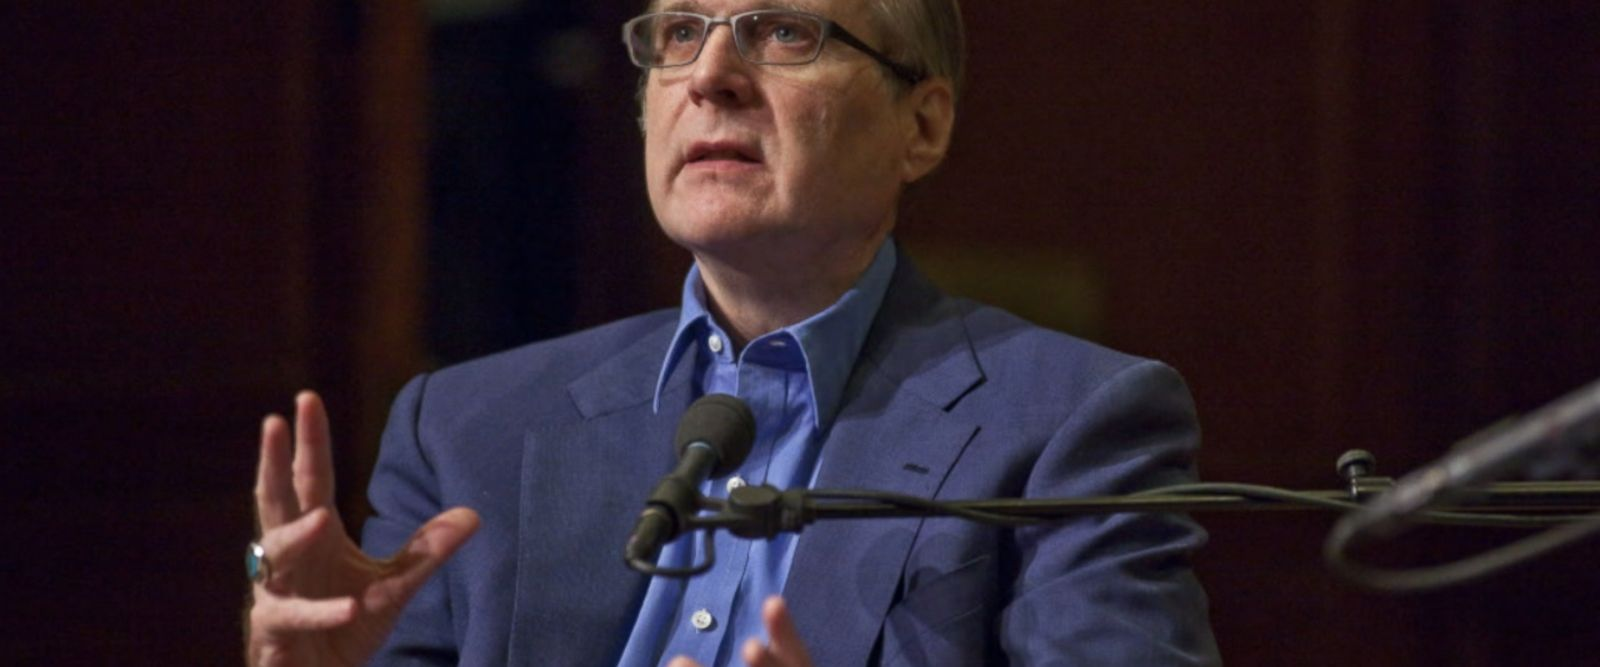 Paul G. Allen, co-founder of Microsoft, died on Monday afternoon in Seattle from complications of non-Hodgkin's lymphoma, a statement from his family said.